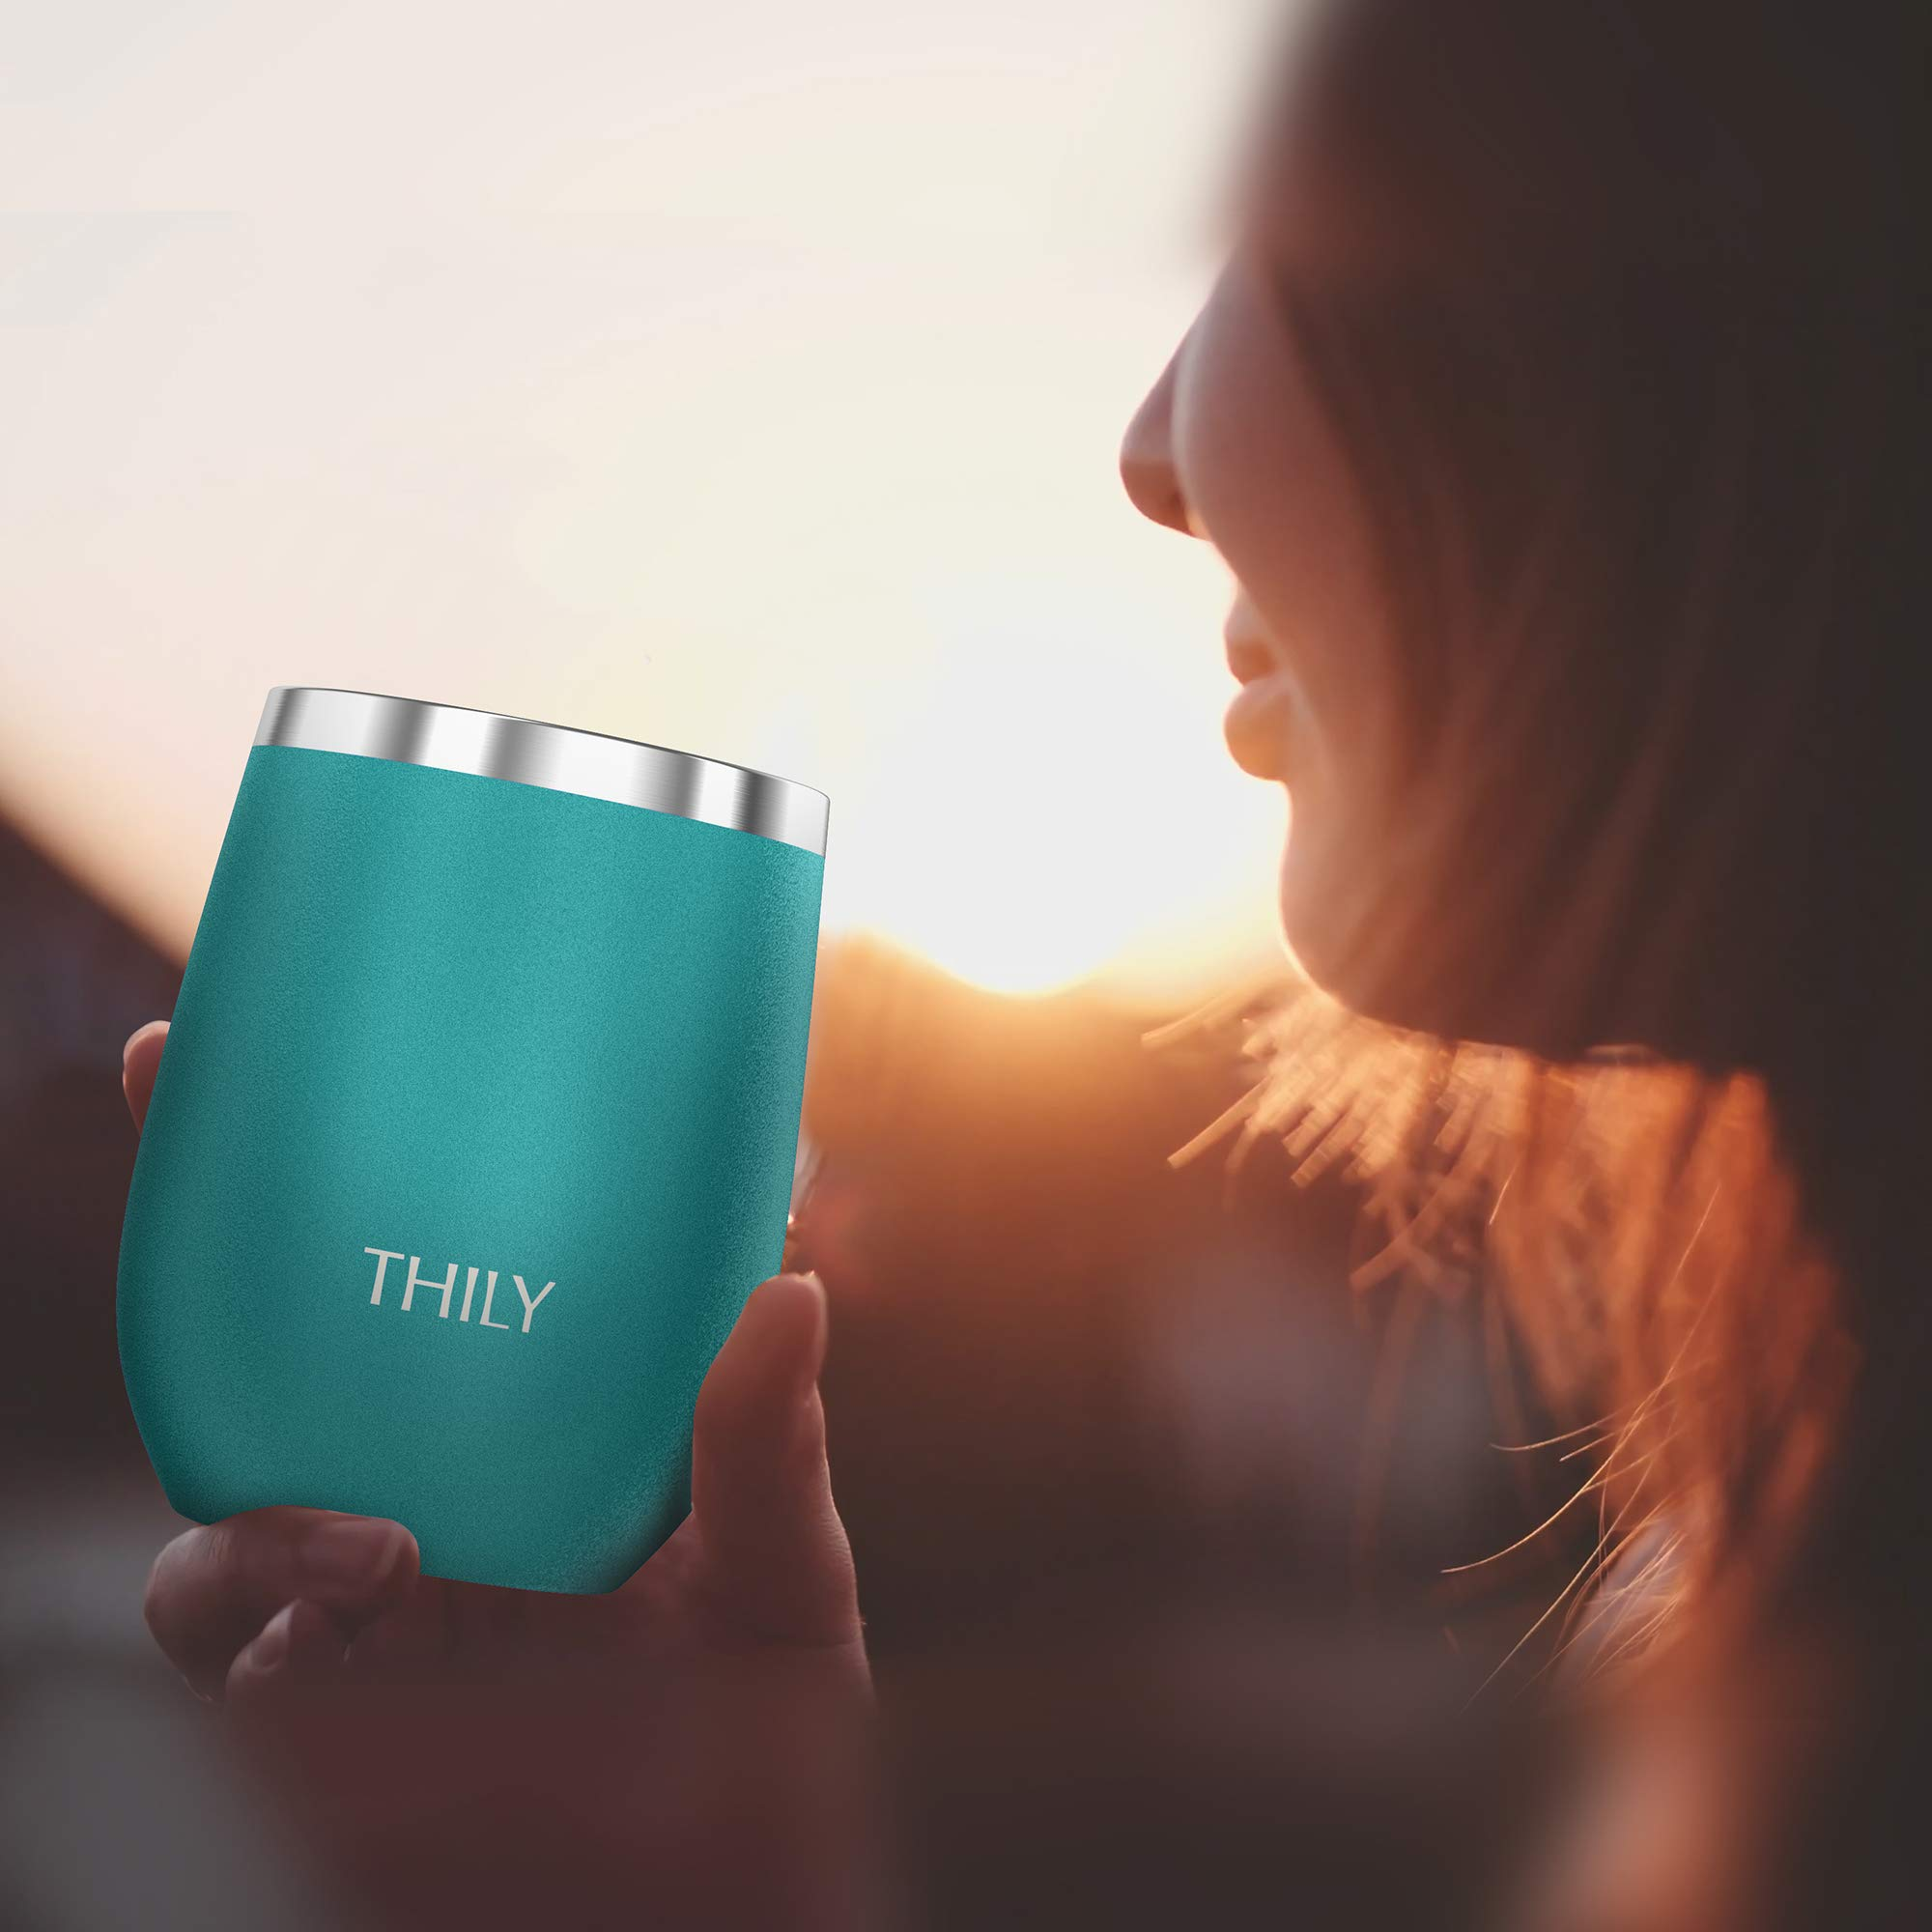 Stainless Steel Stemless Wine Glasses - THILY Triple Vacuum Insulated Cute Travel Tumbler Cup with Spill-Proof Lid, Reusable Straw, Keep Cold & Hot for Wine, Coffee, Birthday Xmas Gift, 4 Pack, Teal by THILY (Image #6)